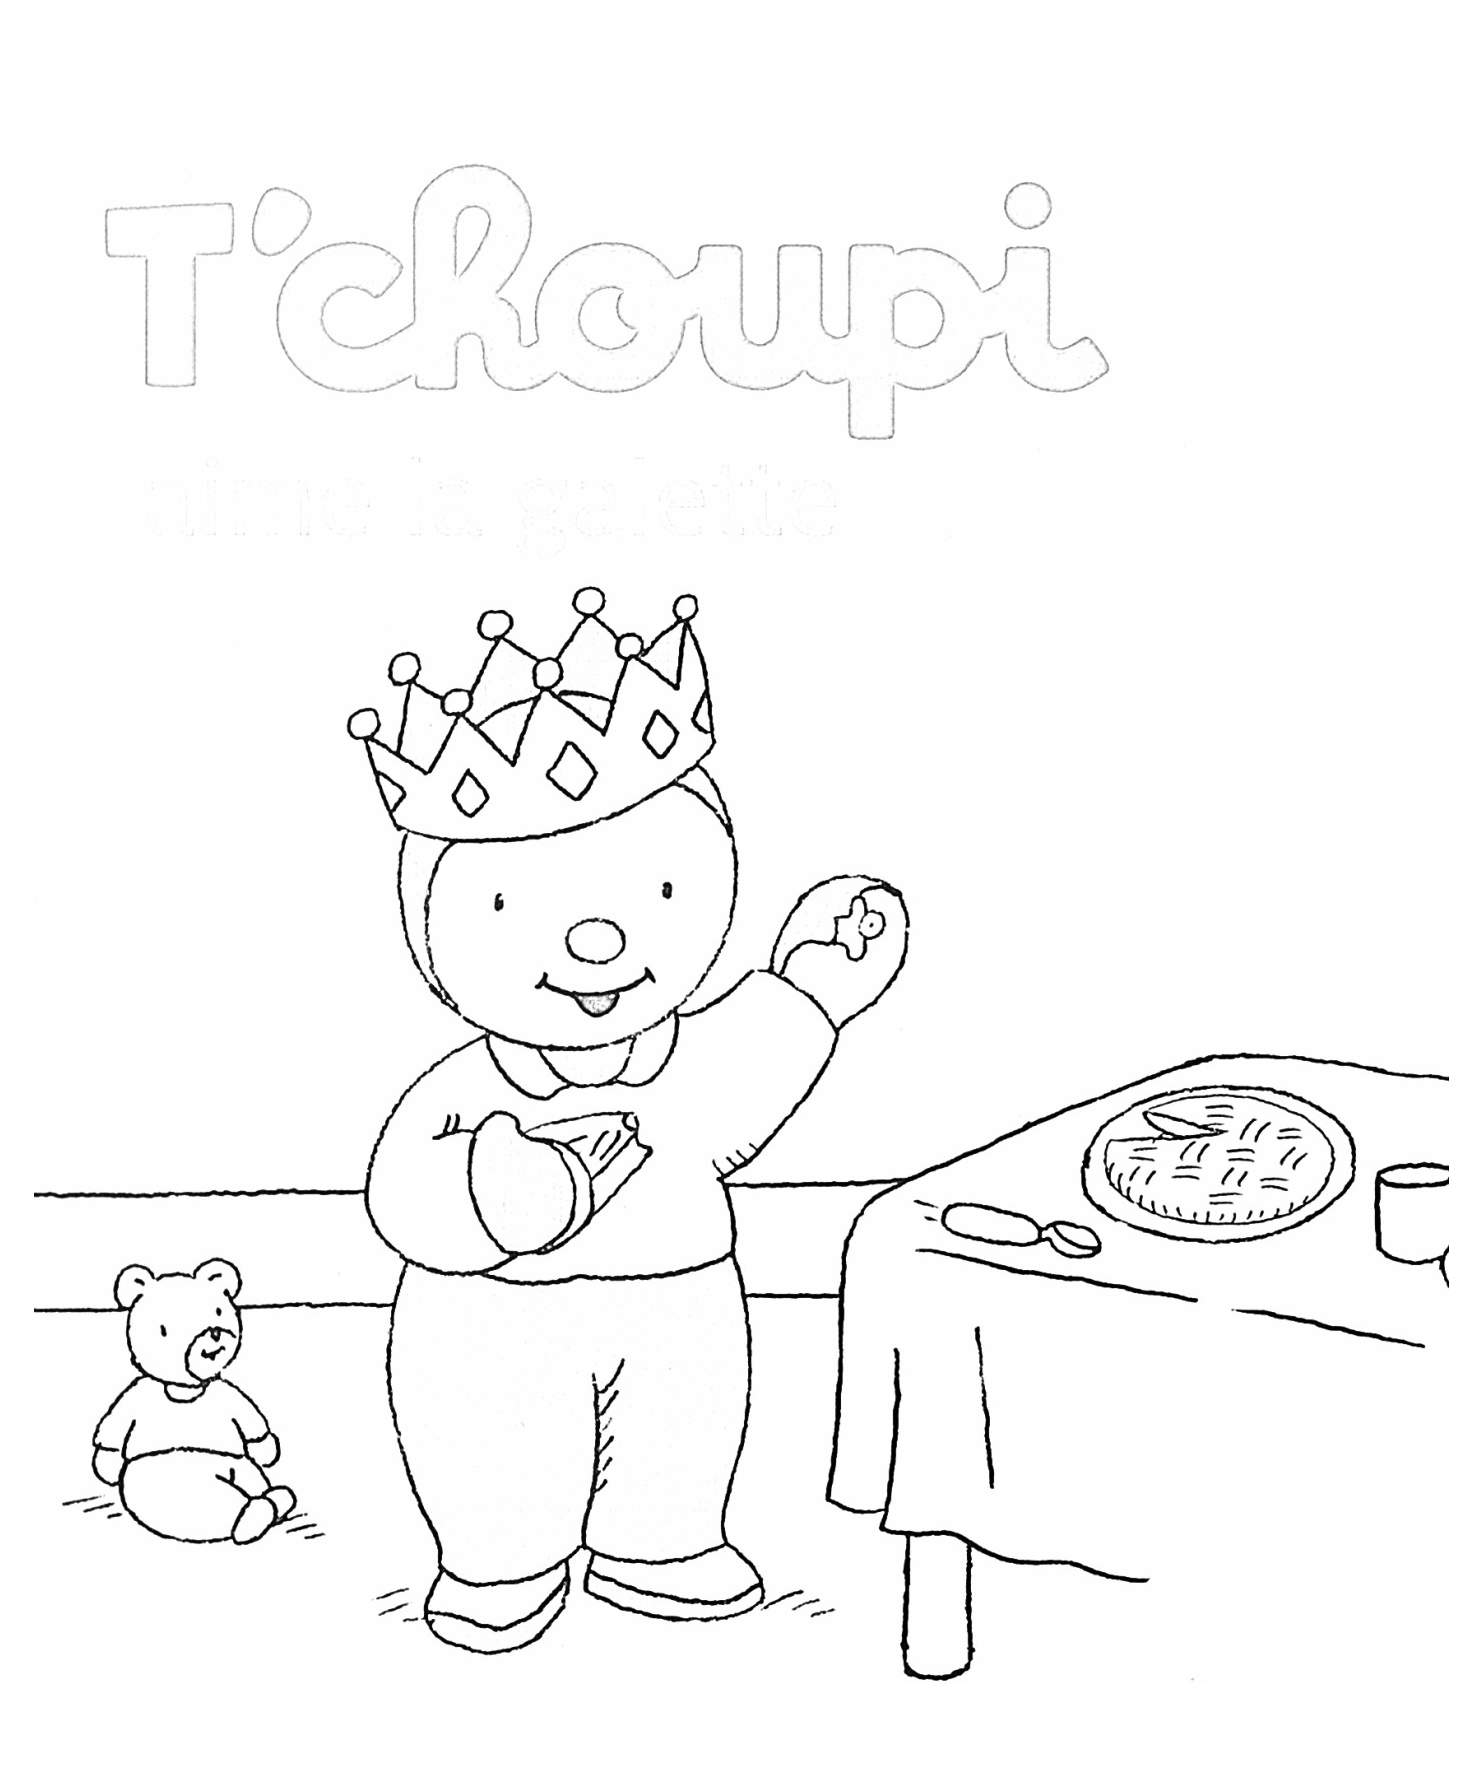 Galette coloring page with few details for kids